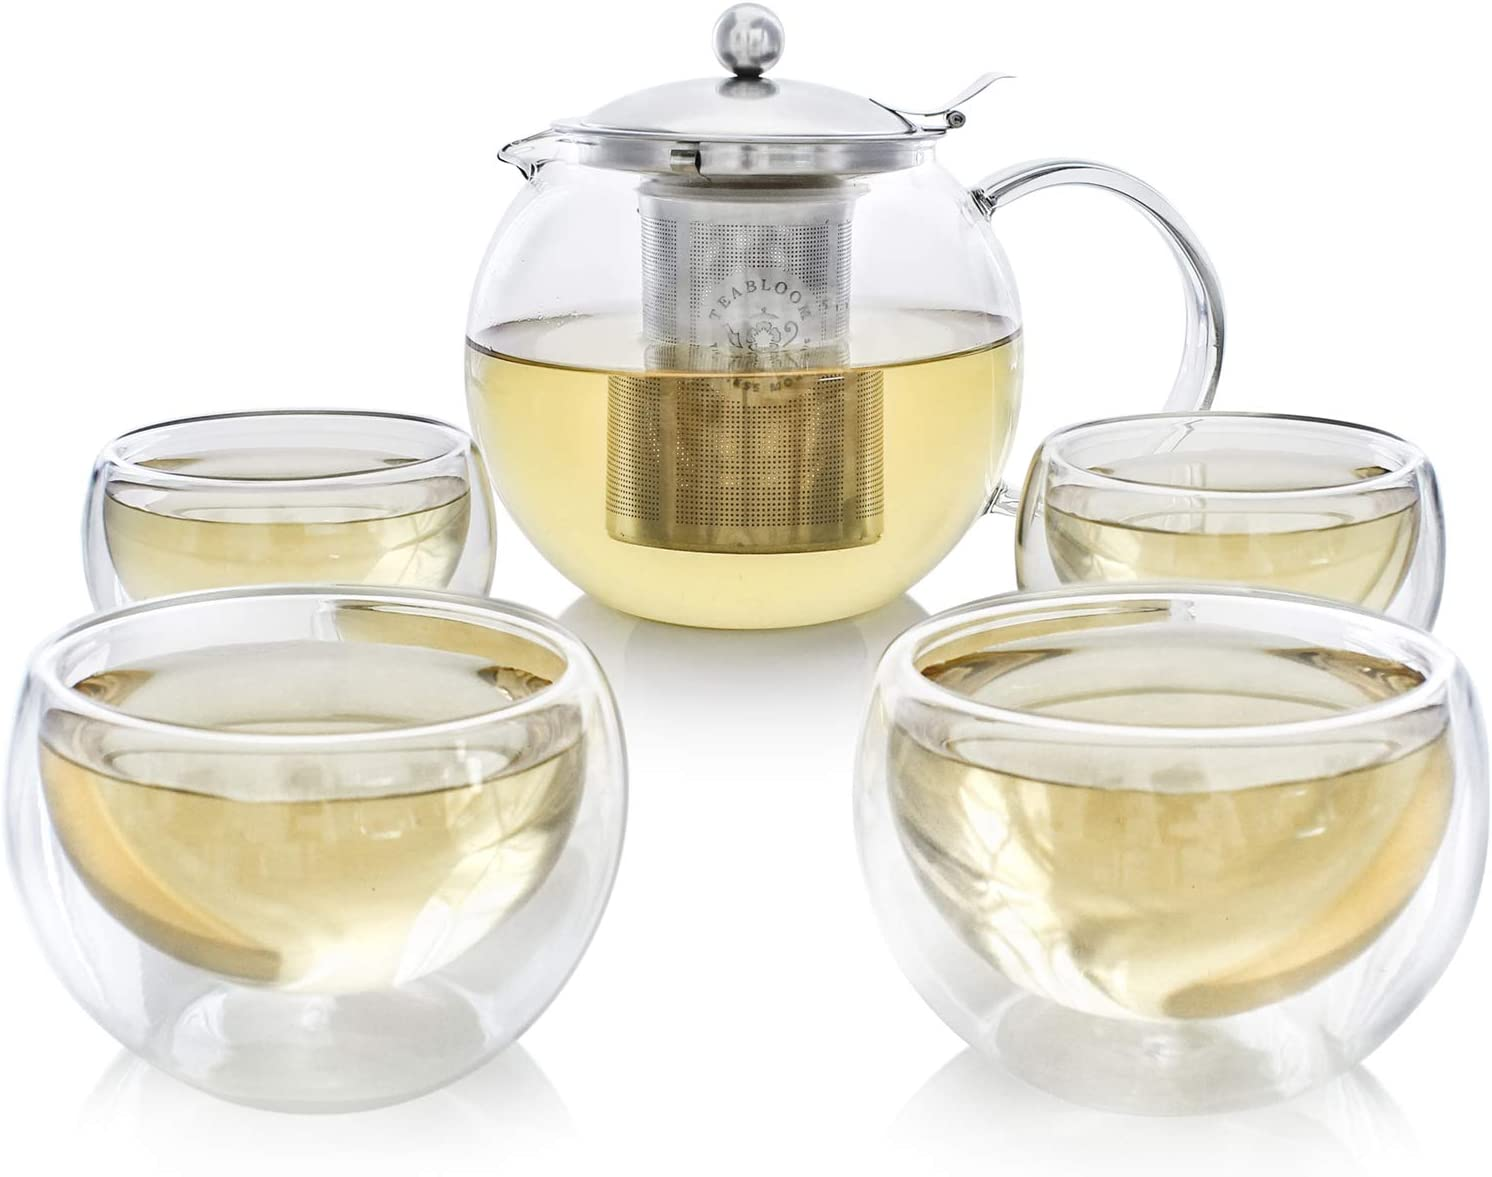 Teabloom Stovetop Safe + Lead-Free Glass Teapot Set (40 OZ / 1200 ML) with Removable Stainless Steel Infuser for Loose Tea – Includes 4 Insulated Double Wall Glass Cups (5 OZ / 150 ML)